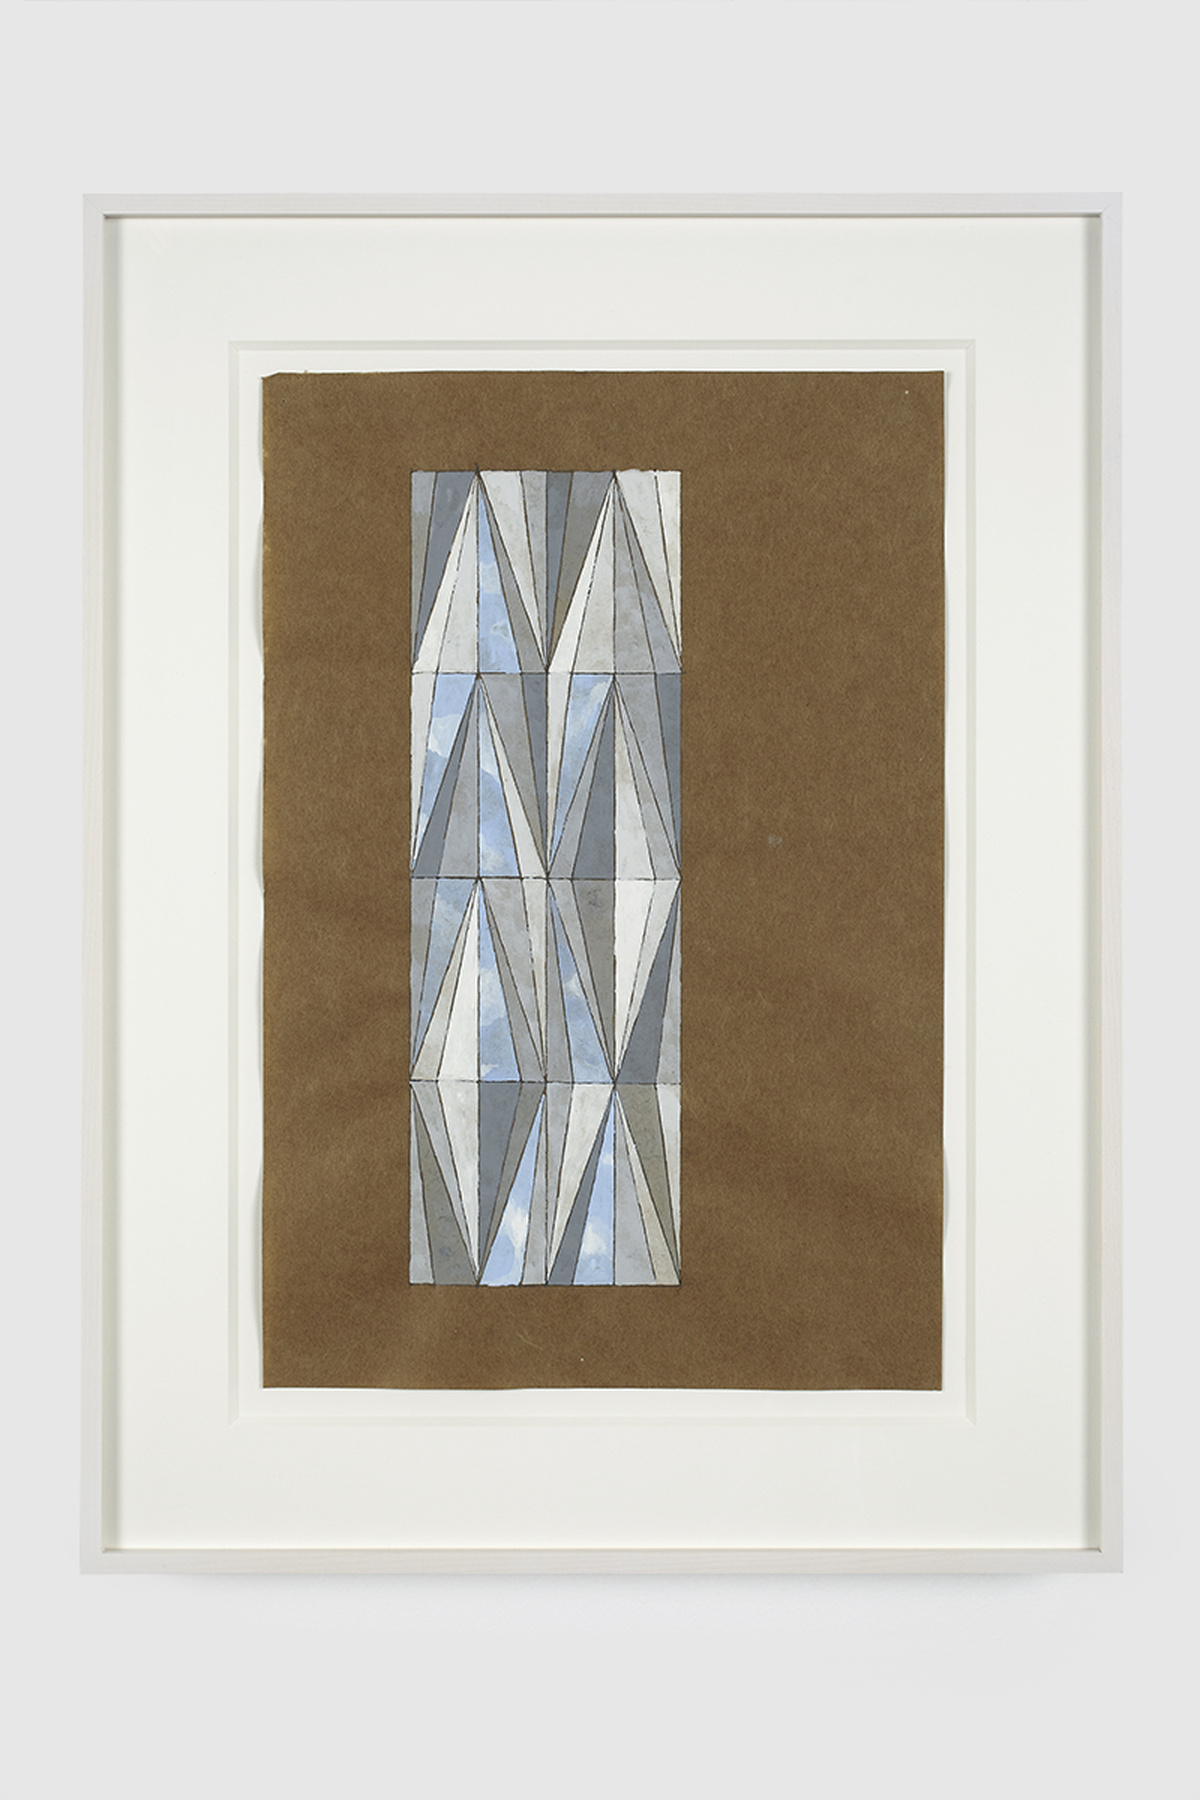 84.Hoeber_Bas-Relief Tile and Facade, 2015_Gouache and graphite on mulberry paper_15 x 10in